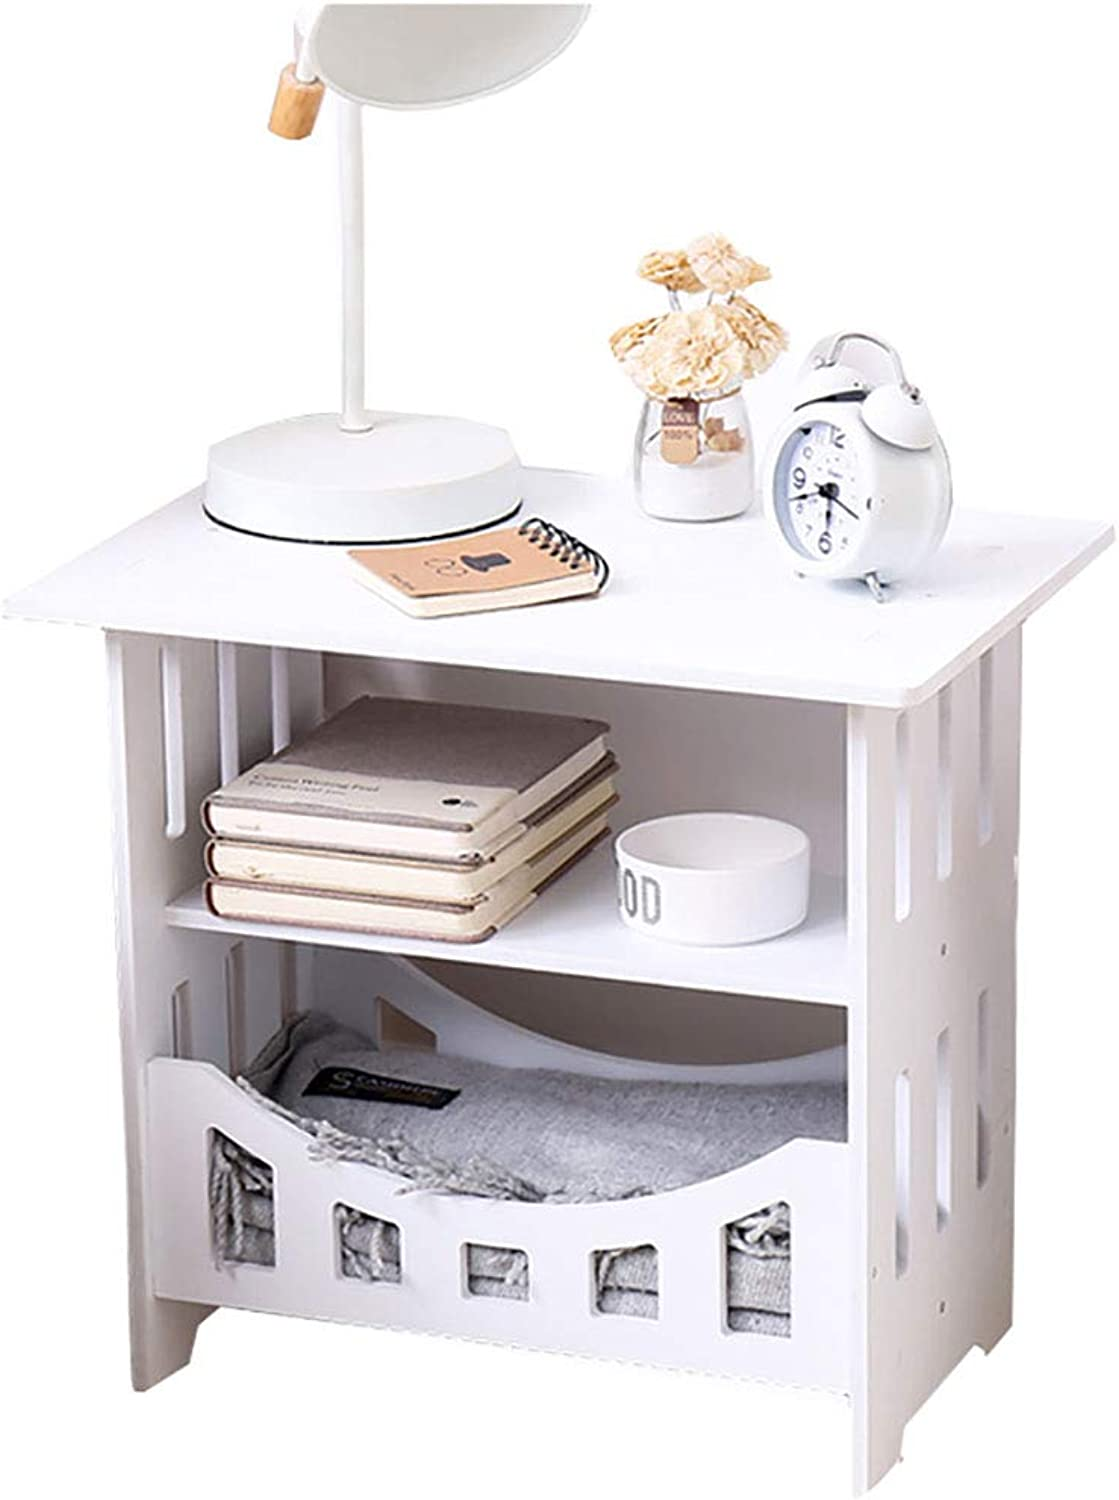 Nightstands End Tables Living Room Furniture Accent Couch with Storage Rack Drawer Compact Multipurpose White for Parlor Bedroom